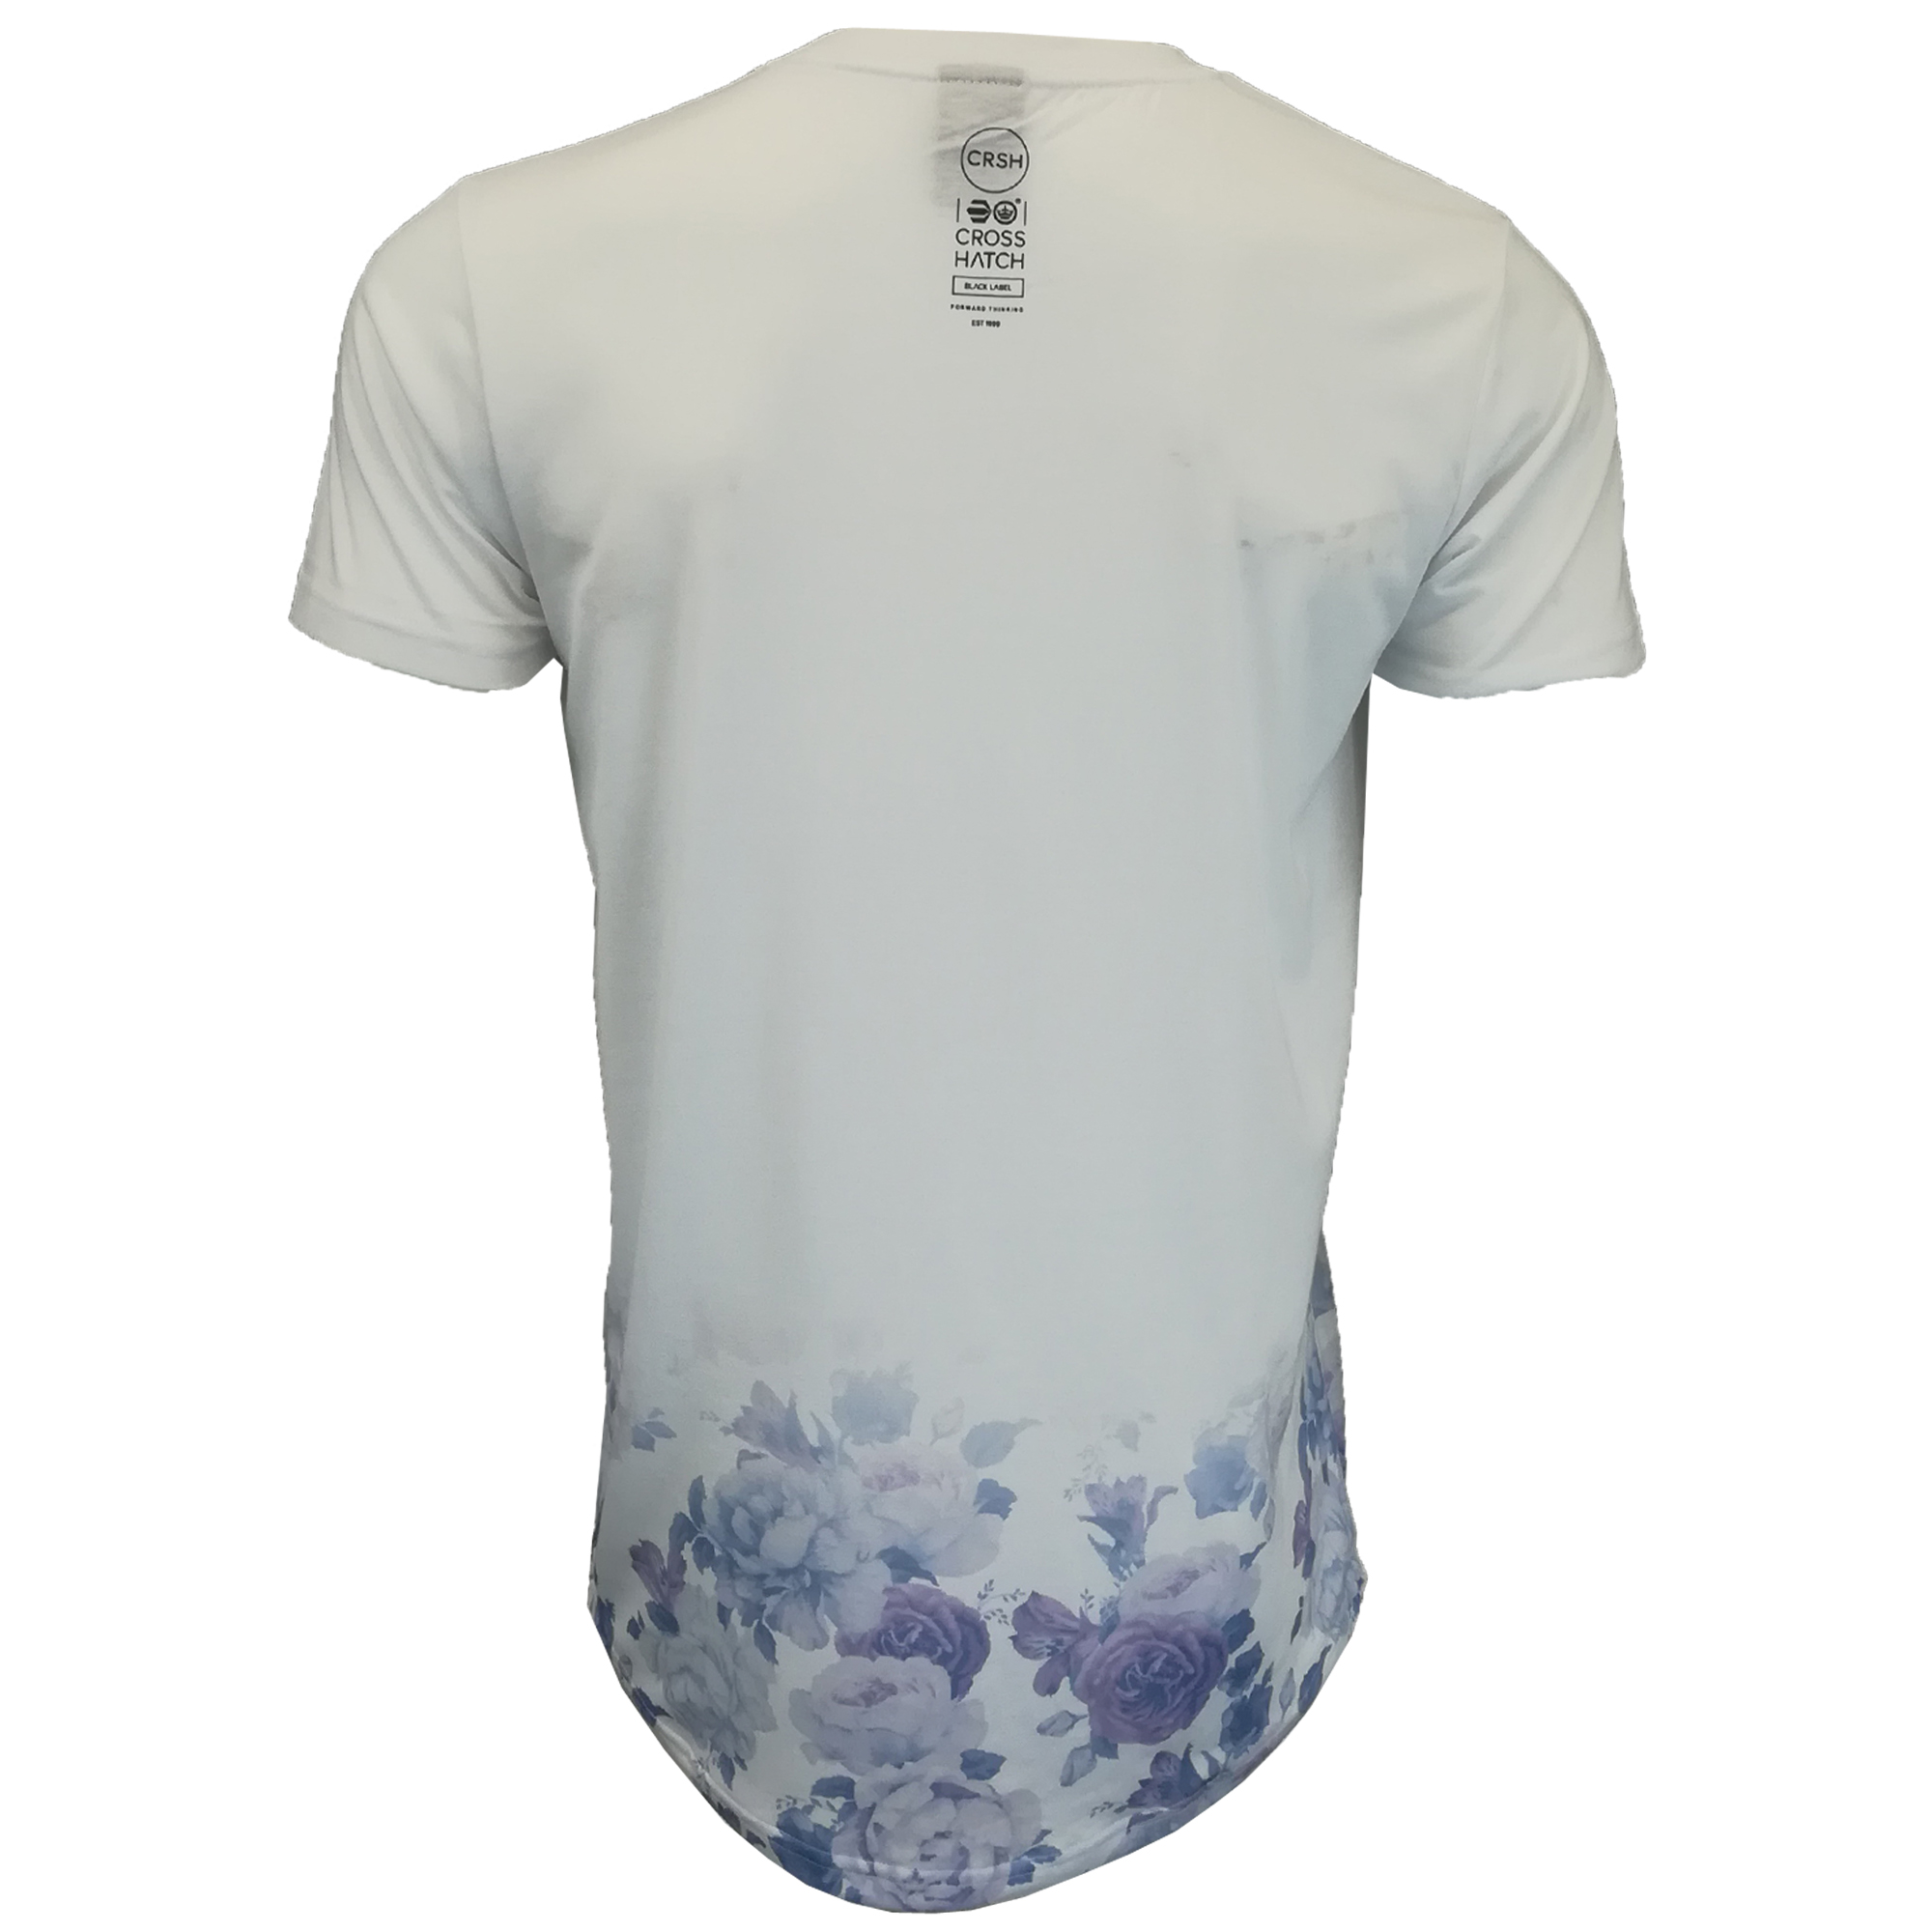 Mens-T-Shirt-Crosshatch-Short-Sleeved-Connors-Roses-Print-Top-Floraz-Summer-New thumbnail 12